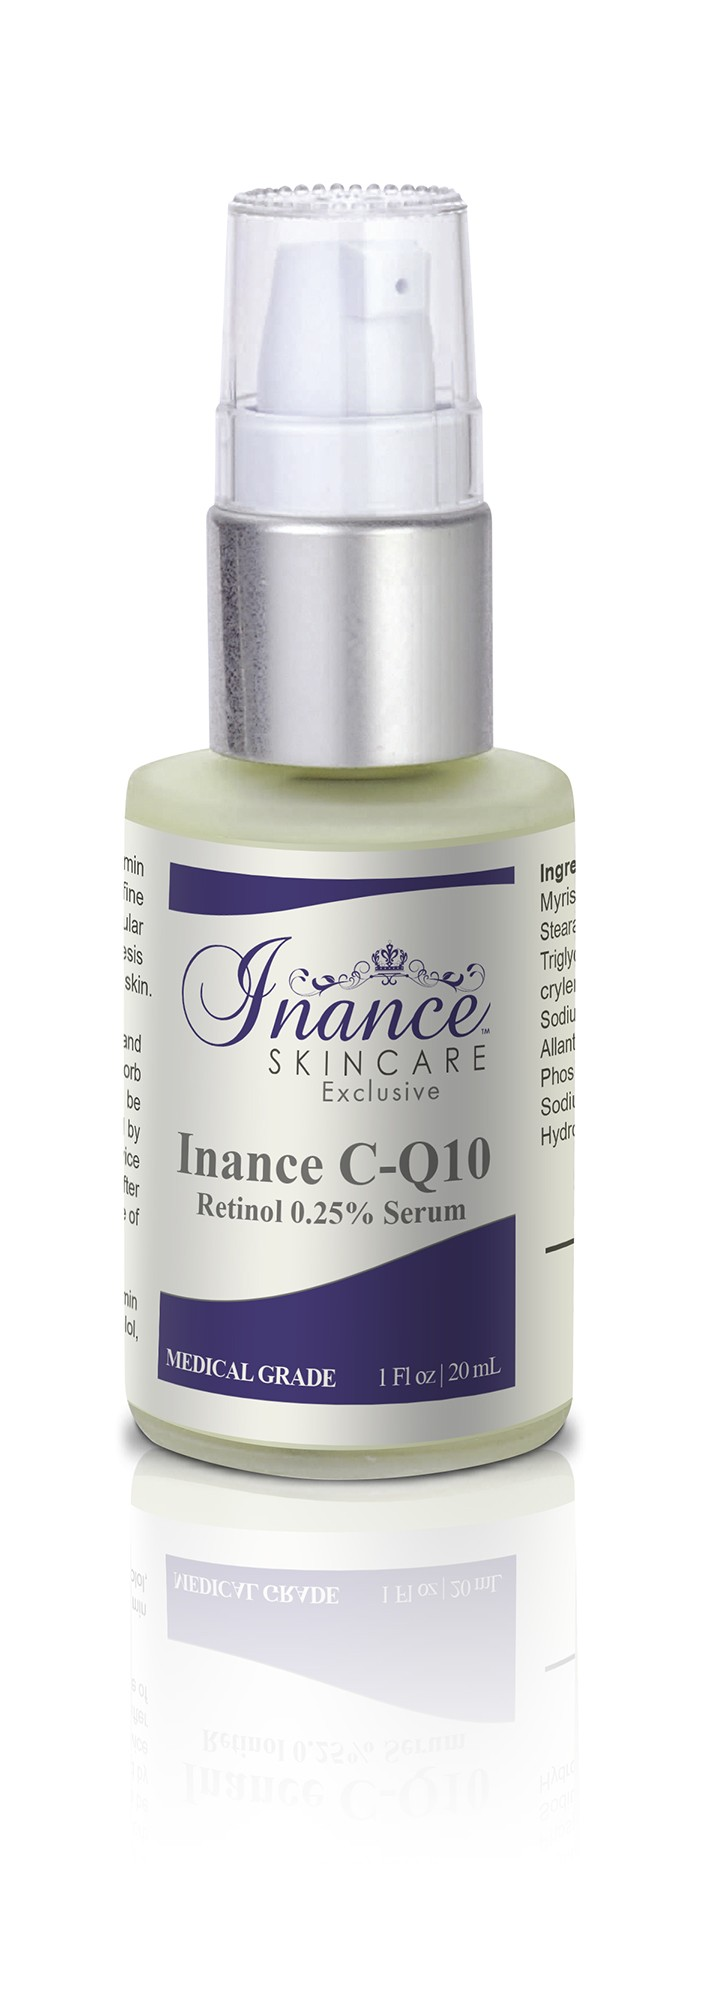 Inance Exclusive C-Q10 Retinol 0.25% (Two and a half percent) Serum with Vitamin C 1 fl oz